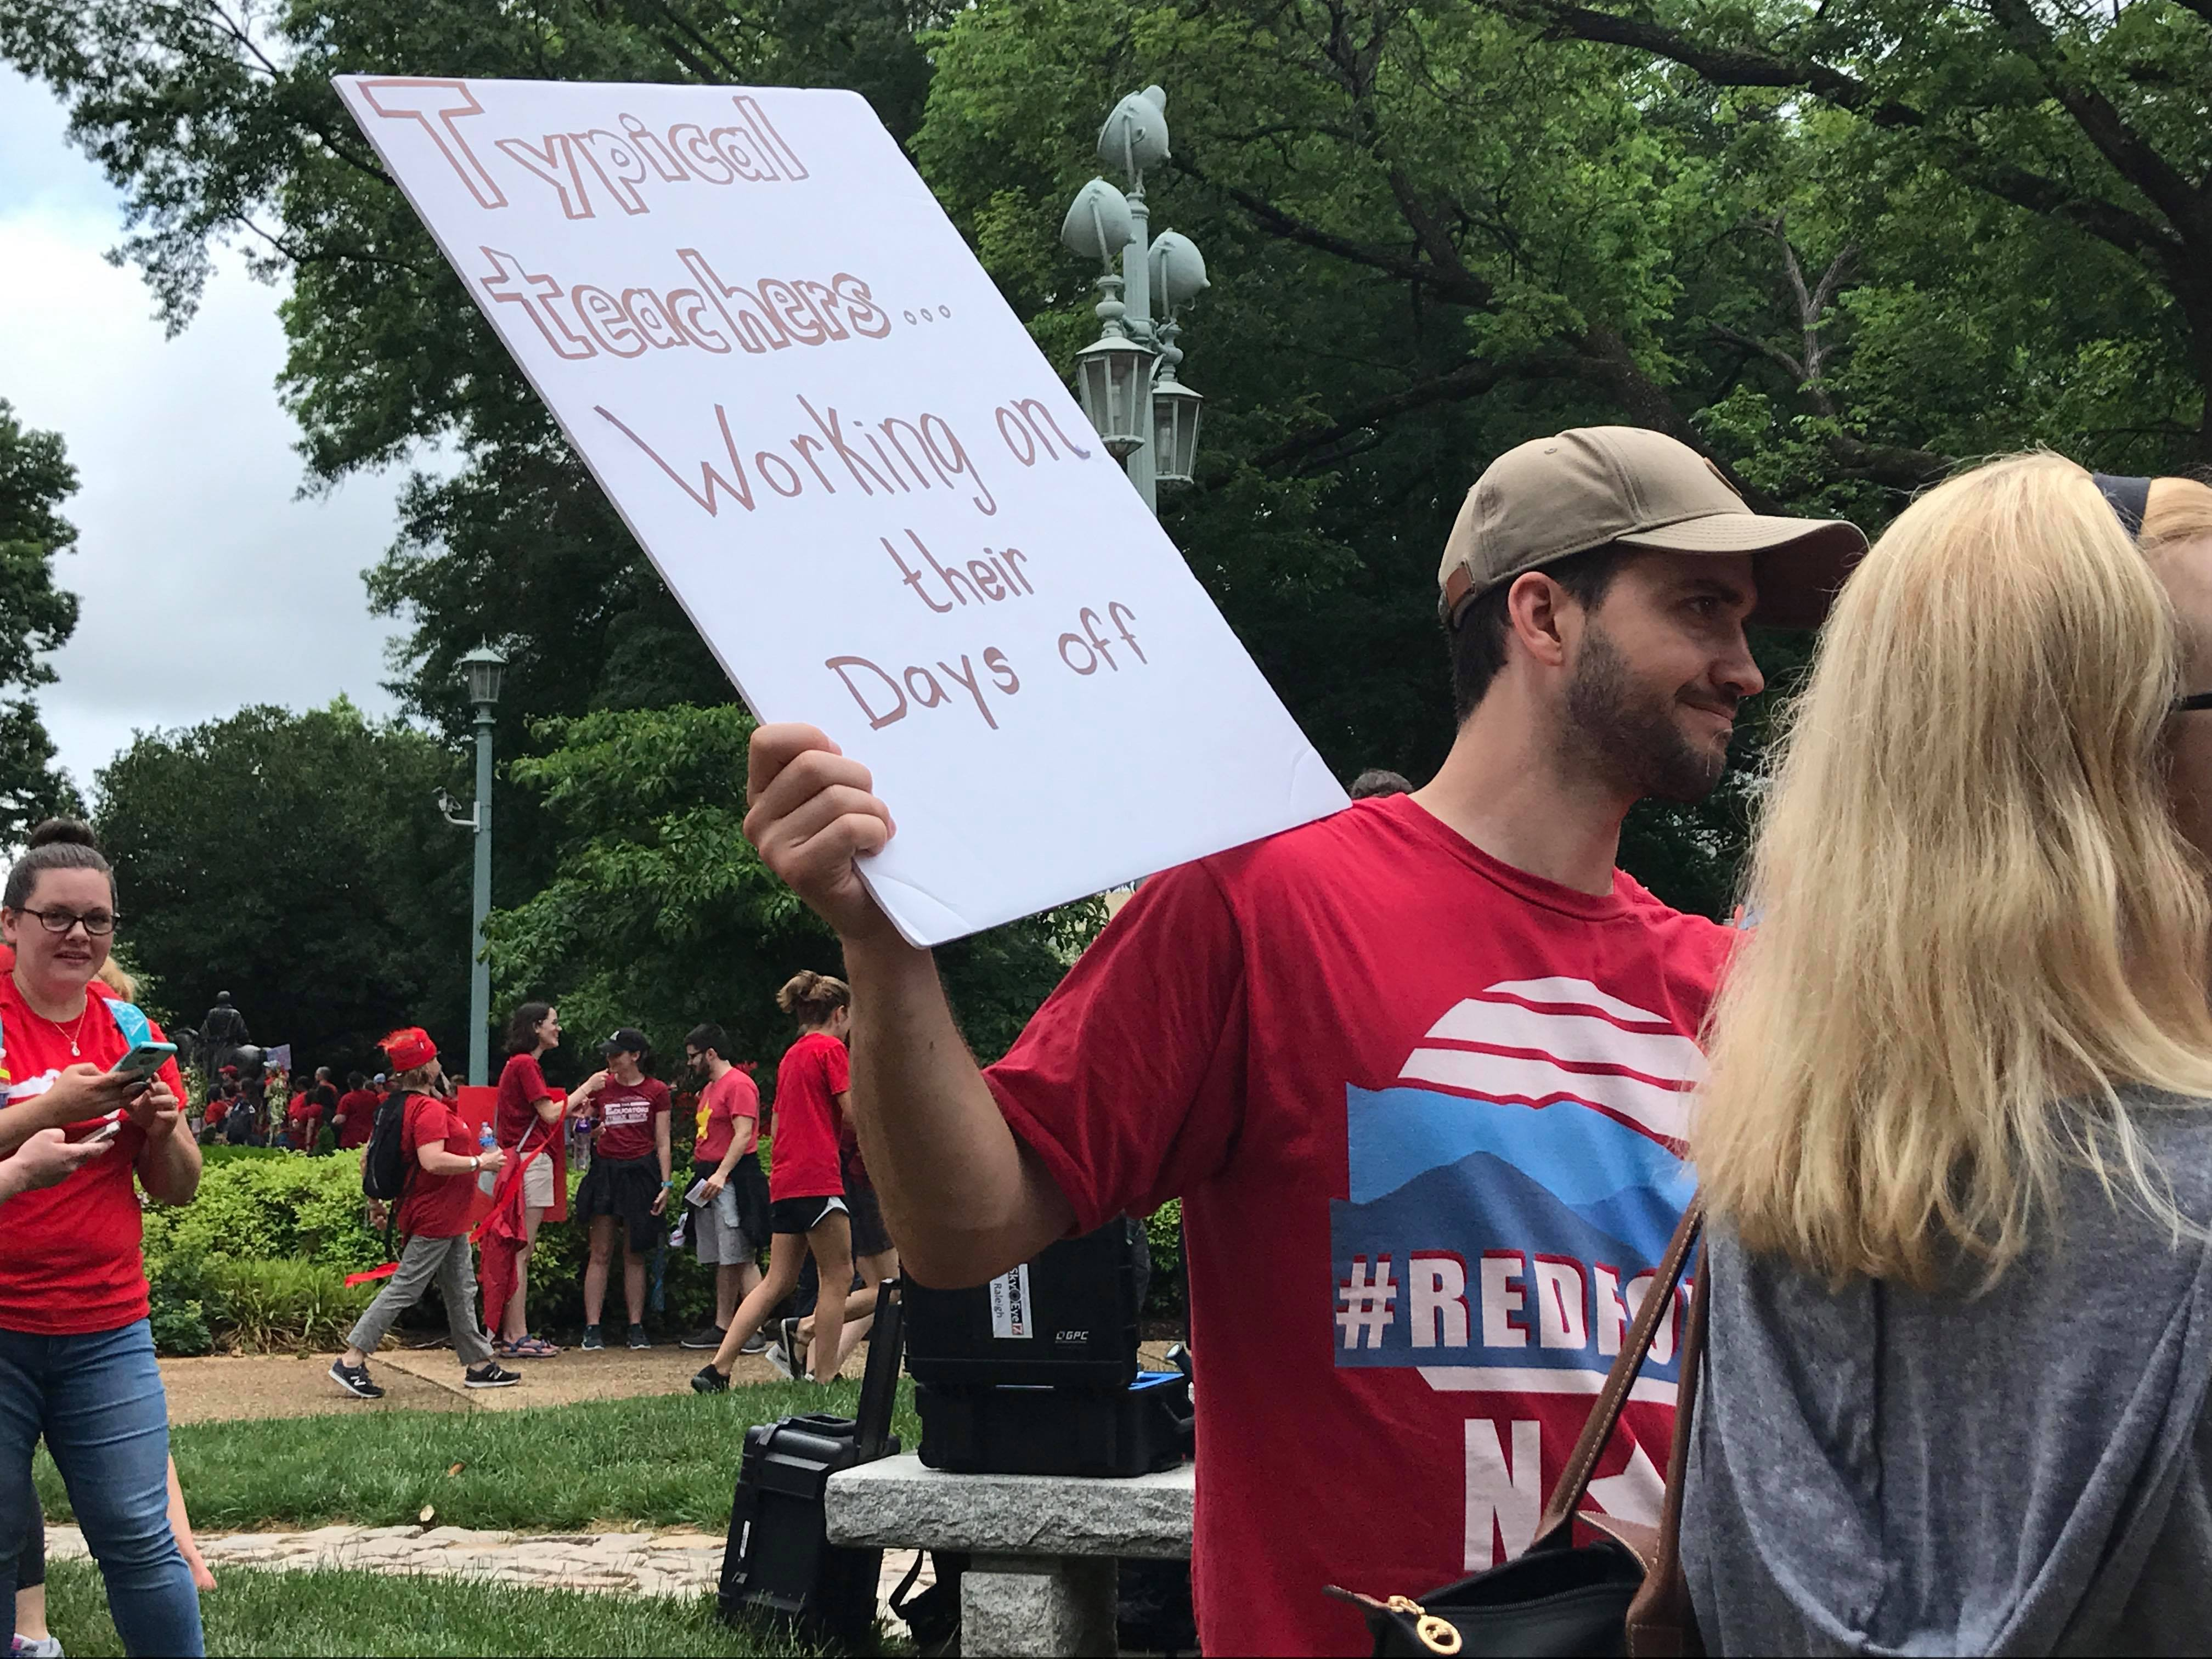 Whether it was students, teachers or other rally-goers, nearly everyone was carrying a sign at Wednesday's rally in Raleigh. (Photo: WCTI)